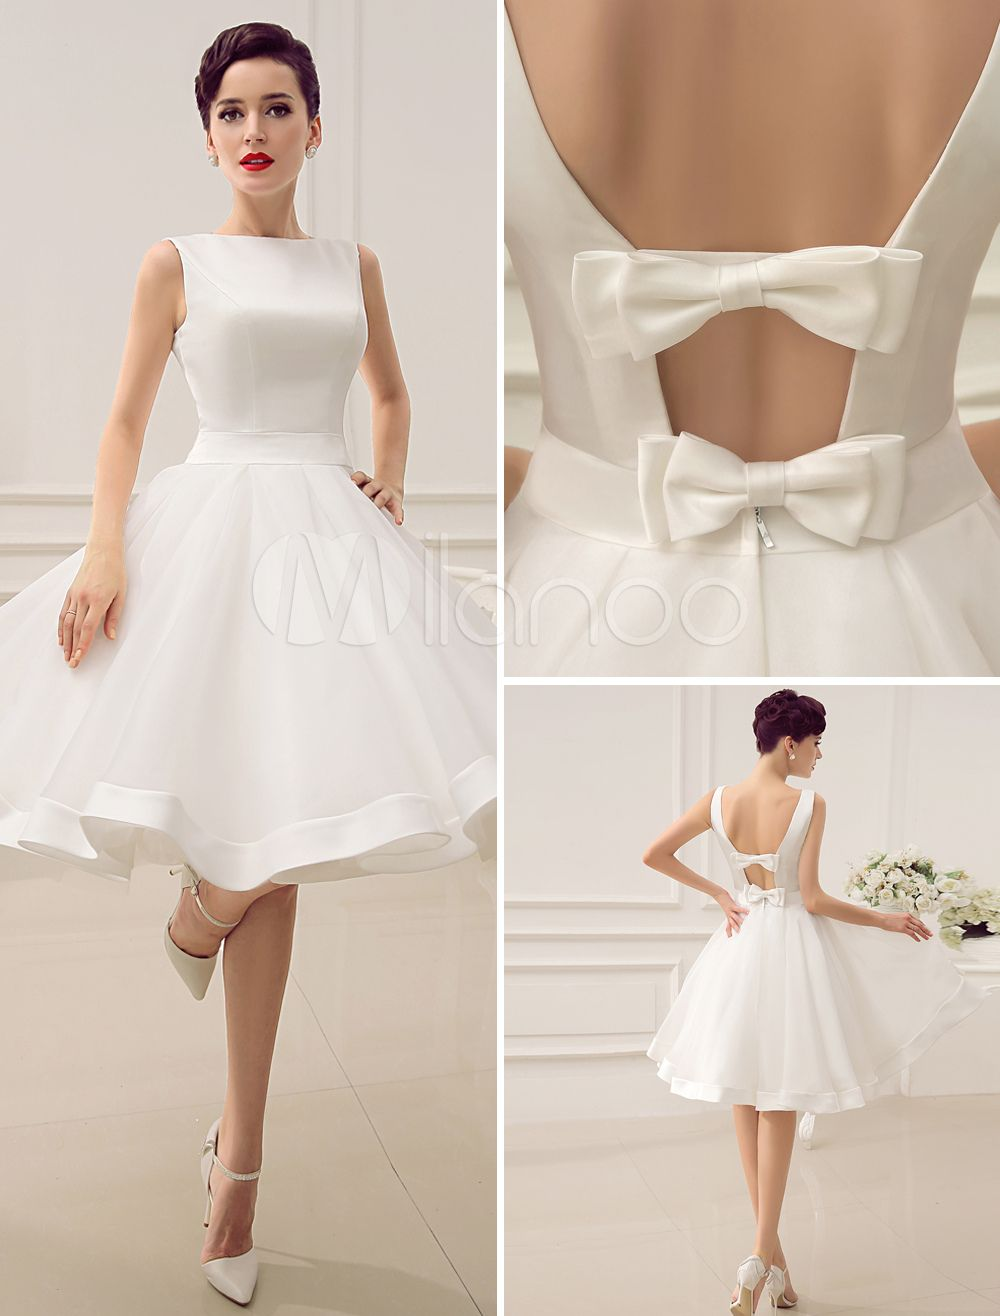 Cut Out Backless Satin Short Wedding Dress With Bow Decor Sash Milanoo